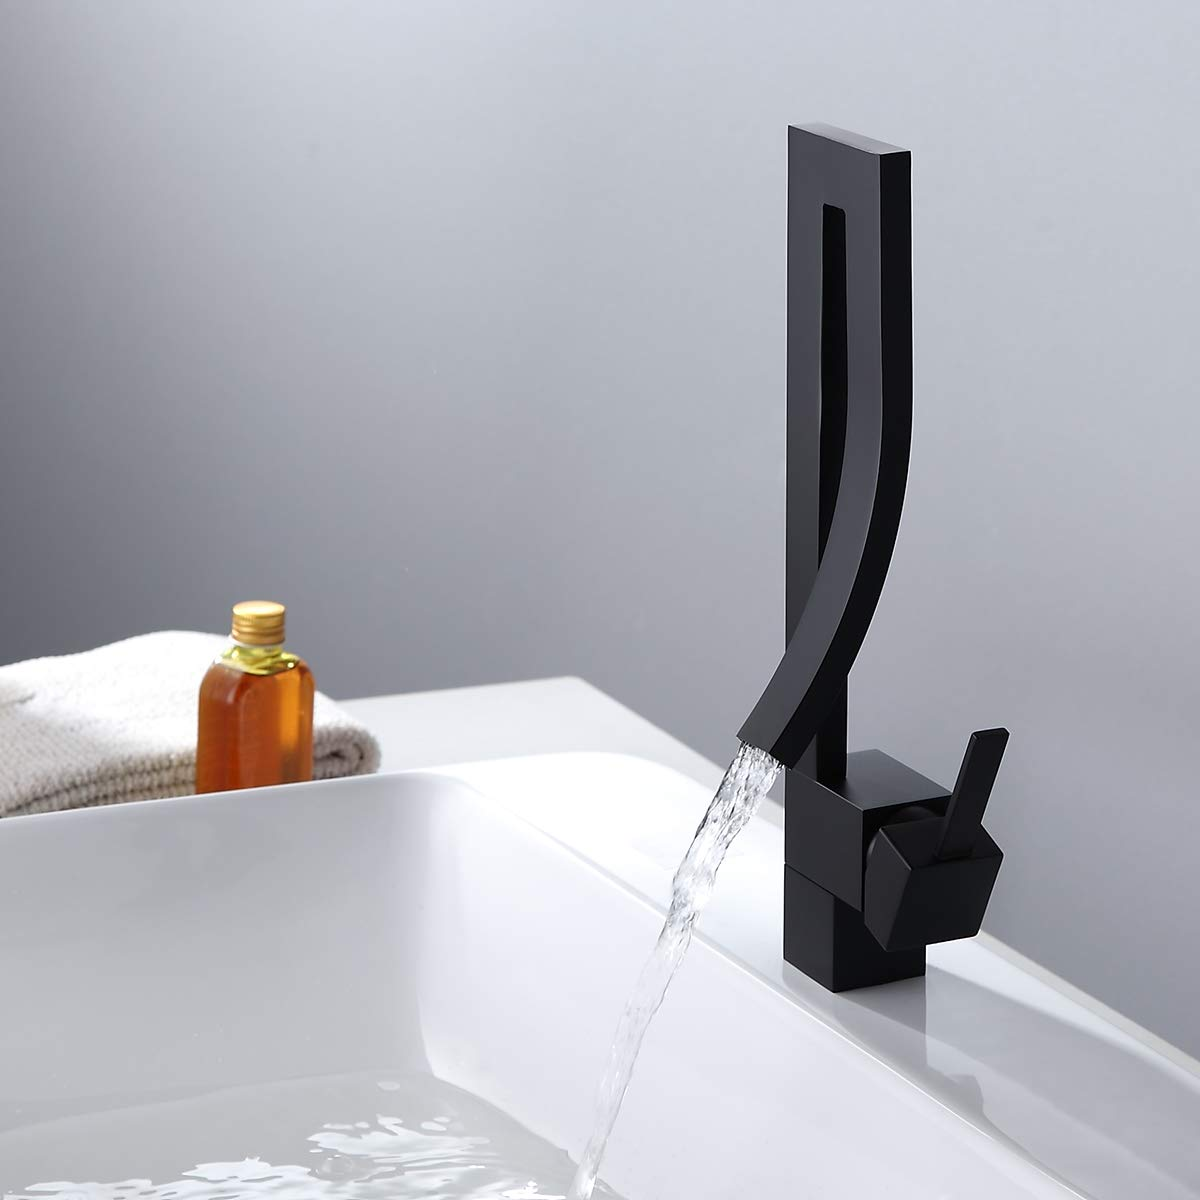 Jiuzhuo Modern Creative Design Single Lever Handle 1 Hole Bathroom Sink Faucet With Waterfall Spout Black Amazon Com